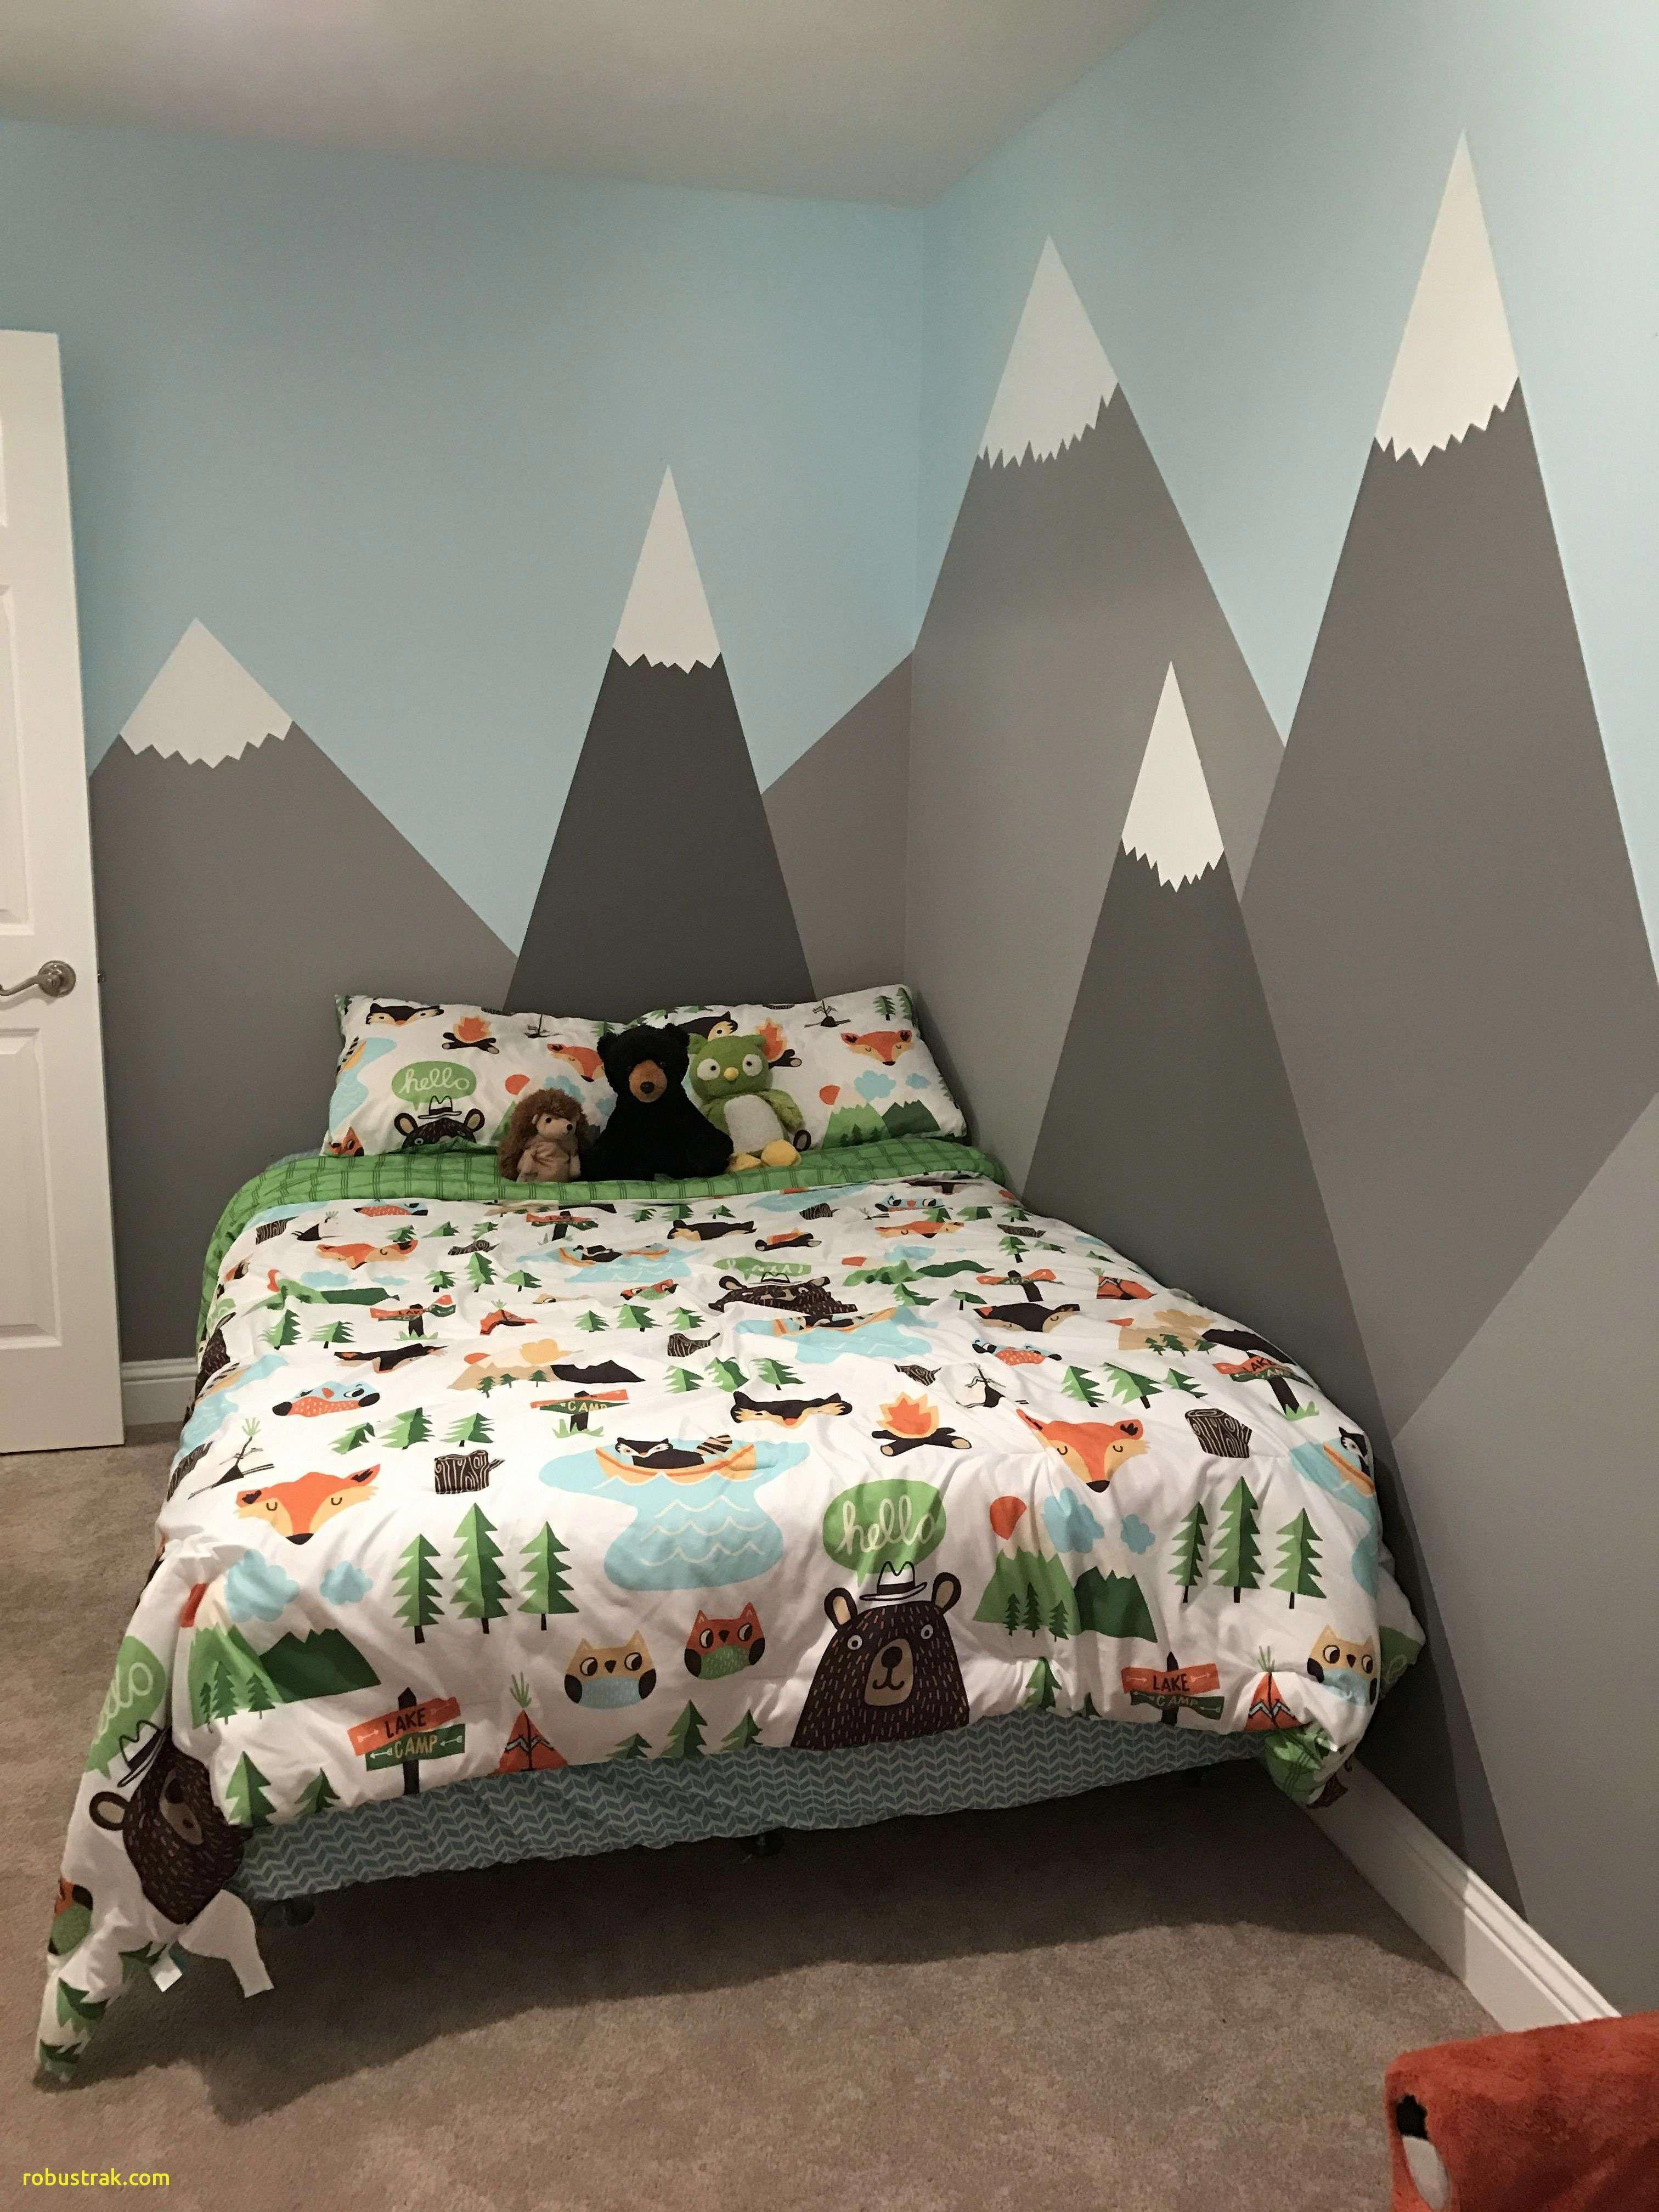 Look At Our Niche Site For Lots More On The Subject Of This Astounding Photo Littleboysbedroom Boys Bedroom Decor Toddler Boys Bedroom Themes Boy Room Themes